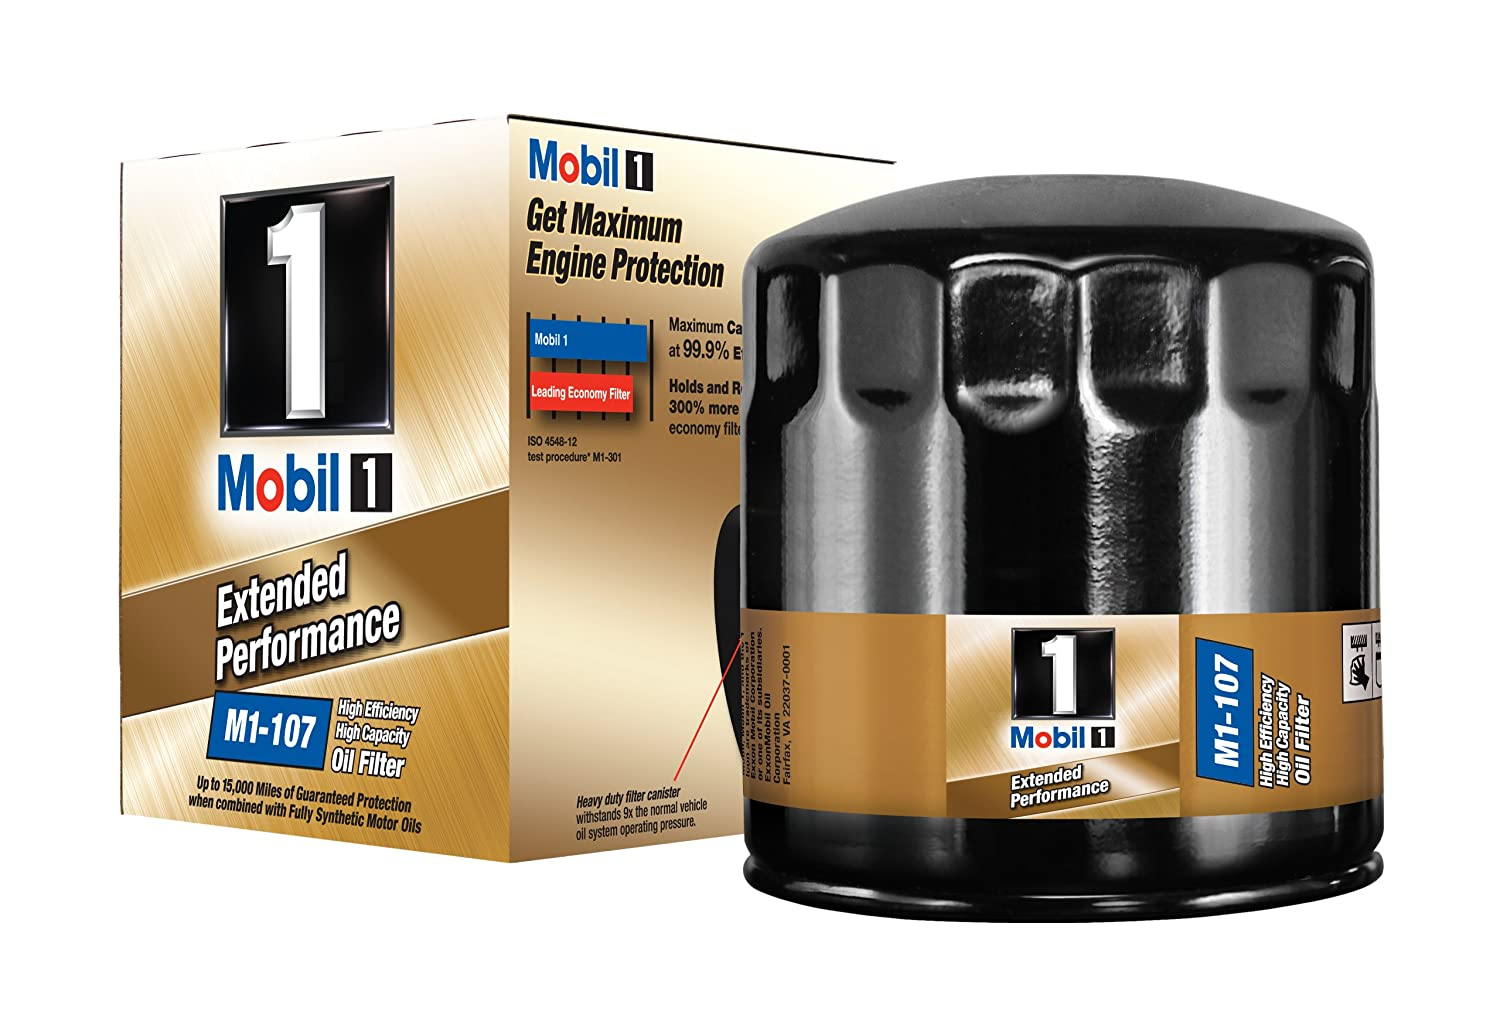 Mobil 1 M1-107 Extended Performance Oil Filter (Pack of 2)